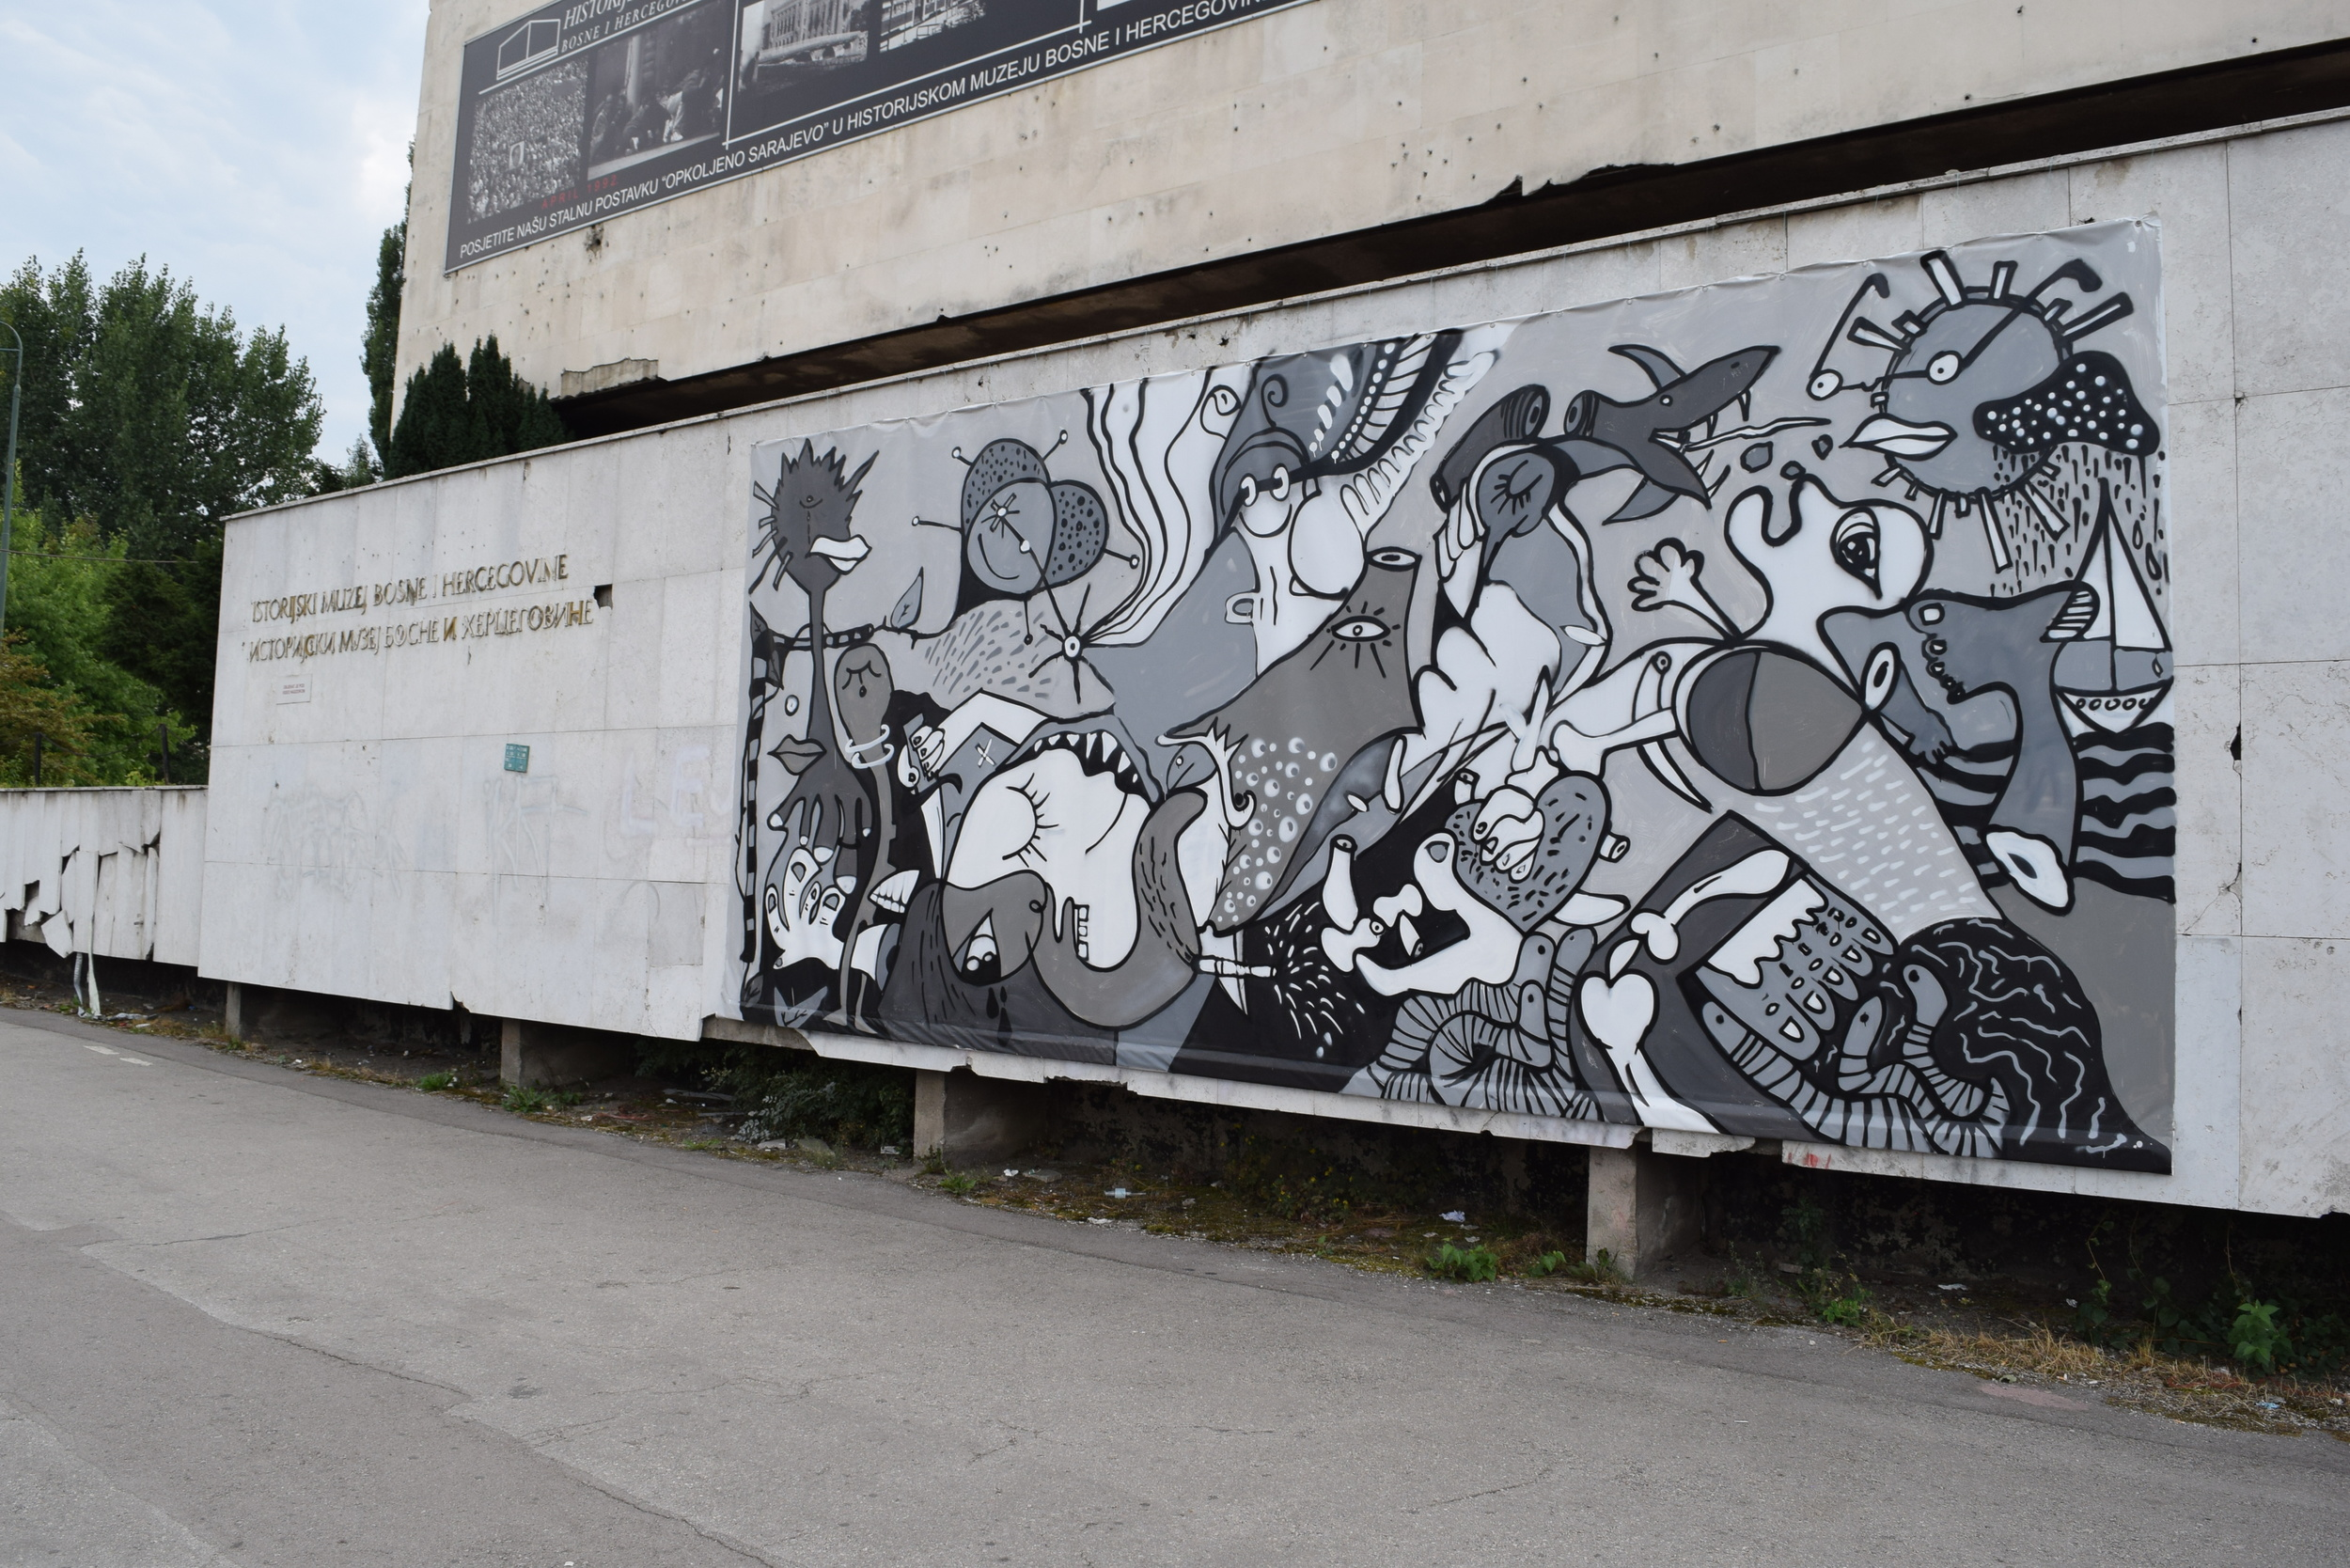 Mural displayed in front of the museum